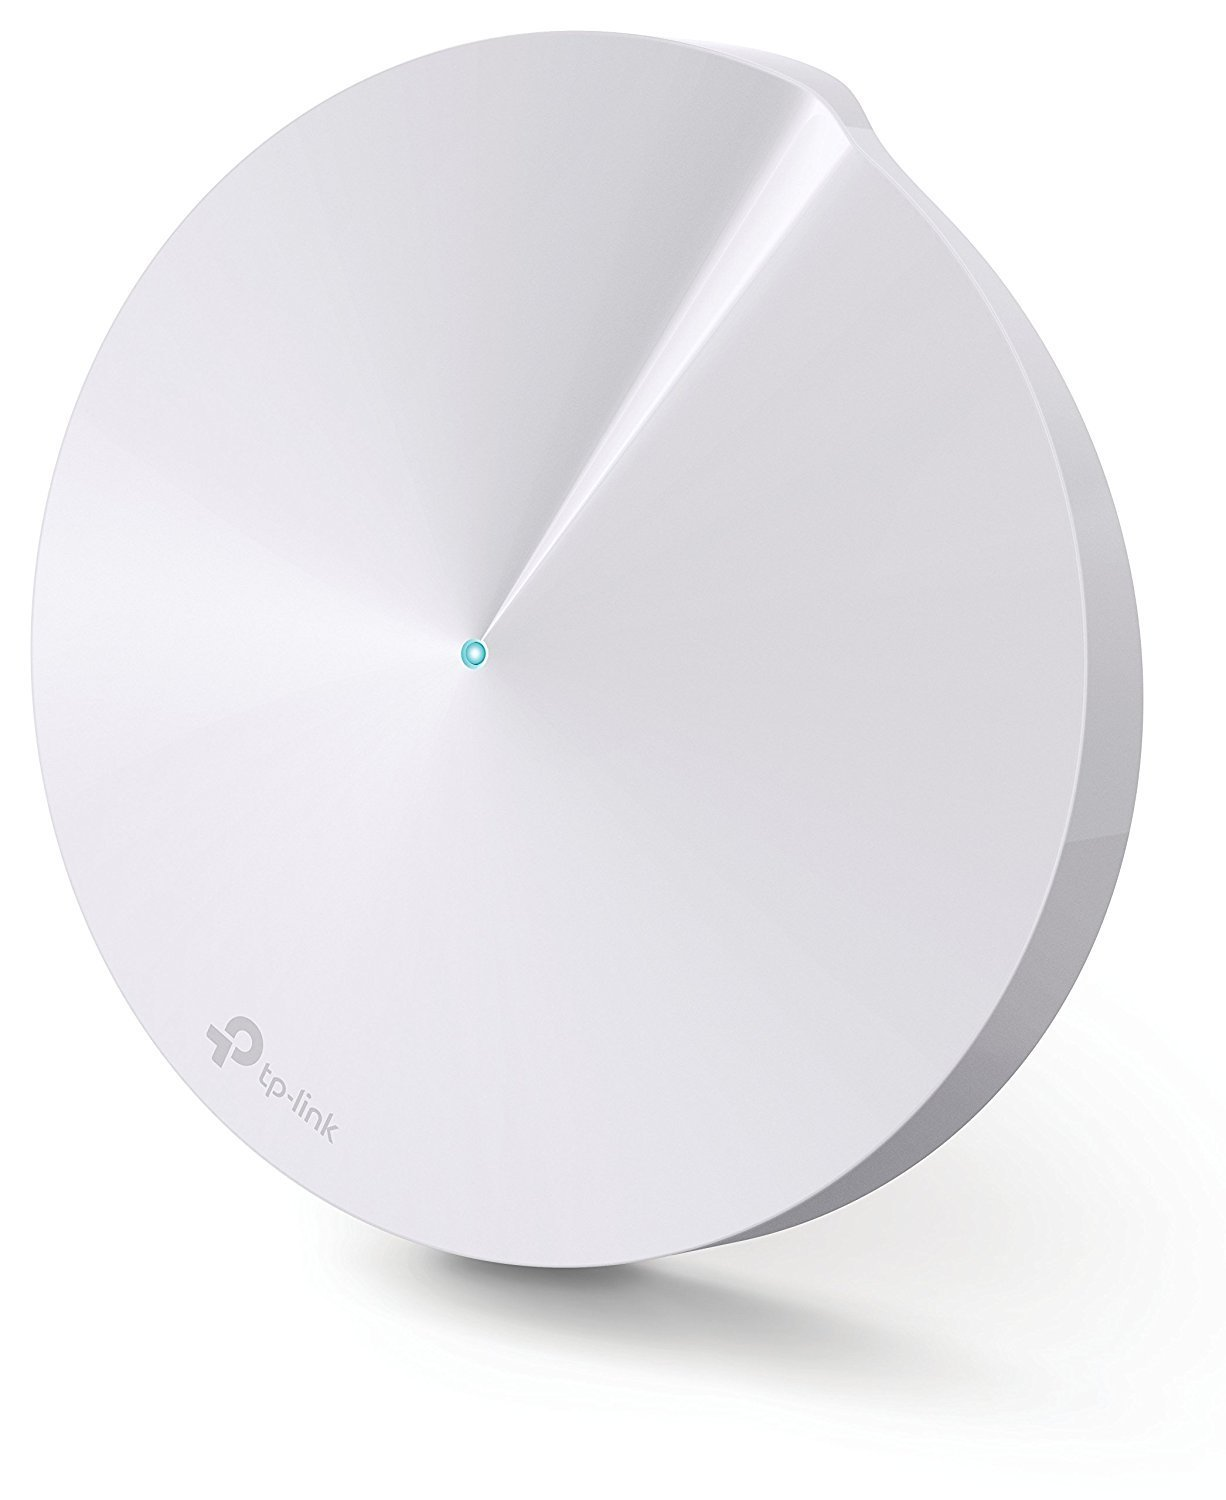 TP-link Deco M5 Whole-Home Dual-Band AC1300 Sistema Wi-Fi,